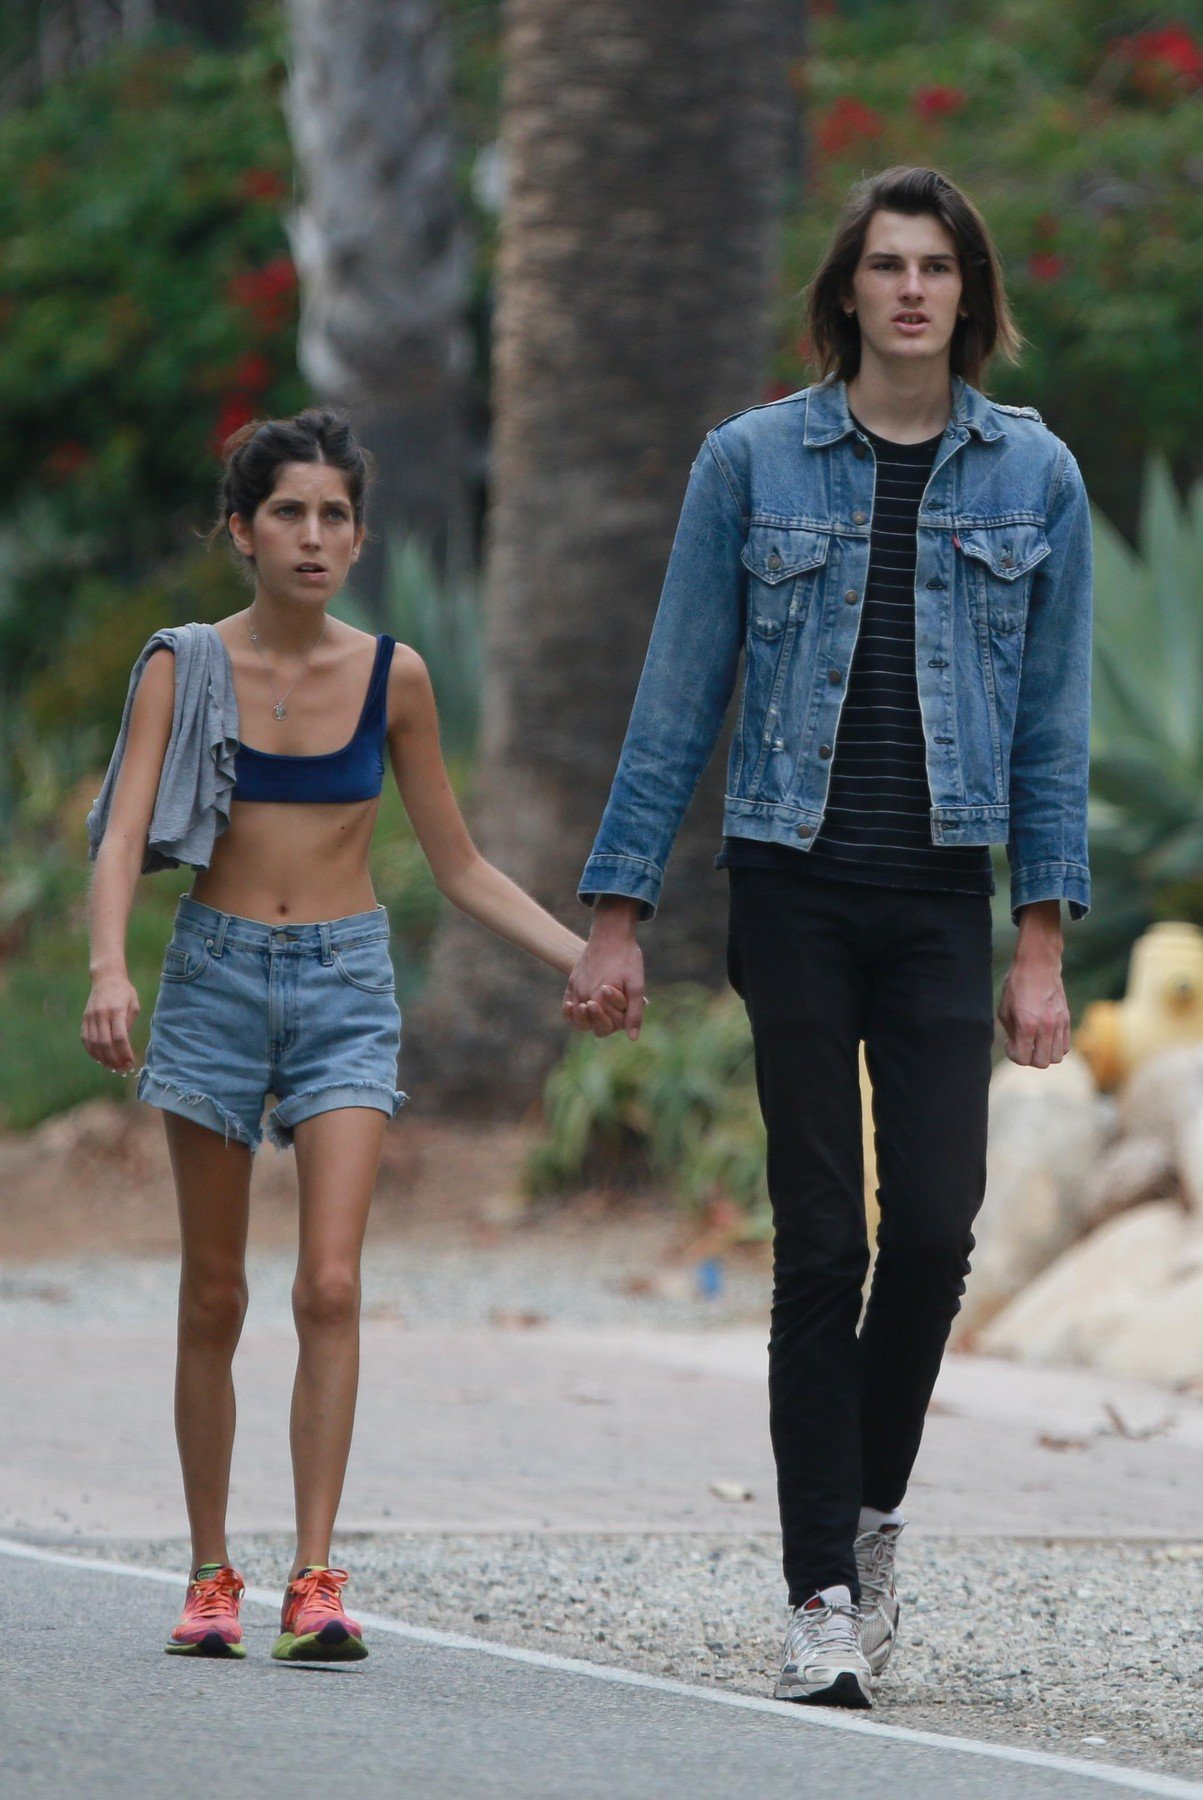 169729, EXCLUSIVE: Pierce Brosnan's son Dylan takes a romantic stroll with his girlfriend in Malibu. Los Angeles, California - Monday September 4, 2017., Image: 348387953, License: Rights-managed, Restrictions: , Model Release: no, Credit line: Profimedia, Pacific coast news